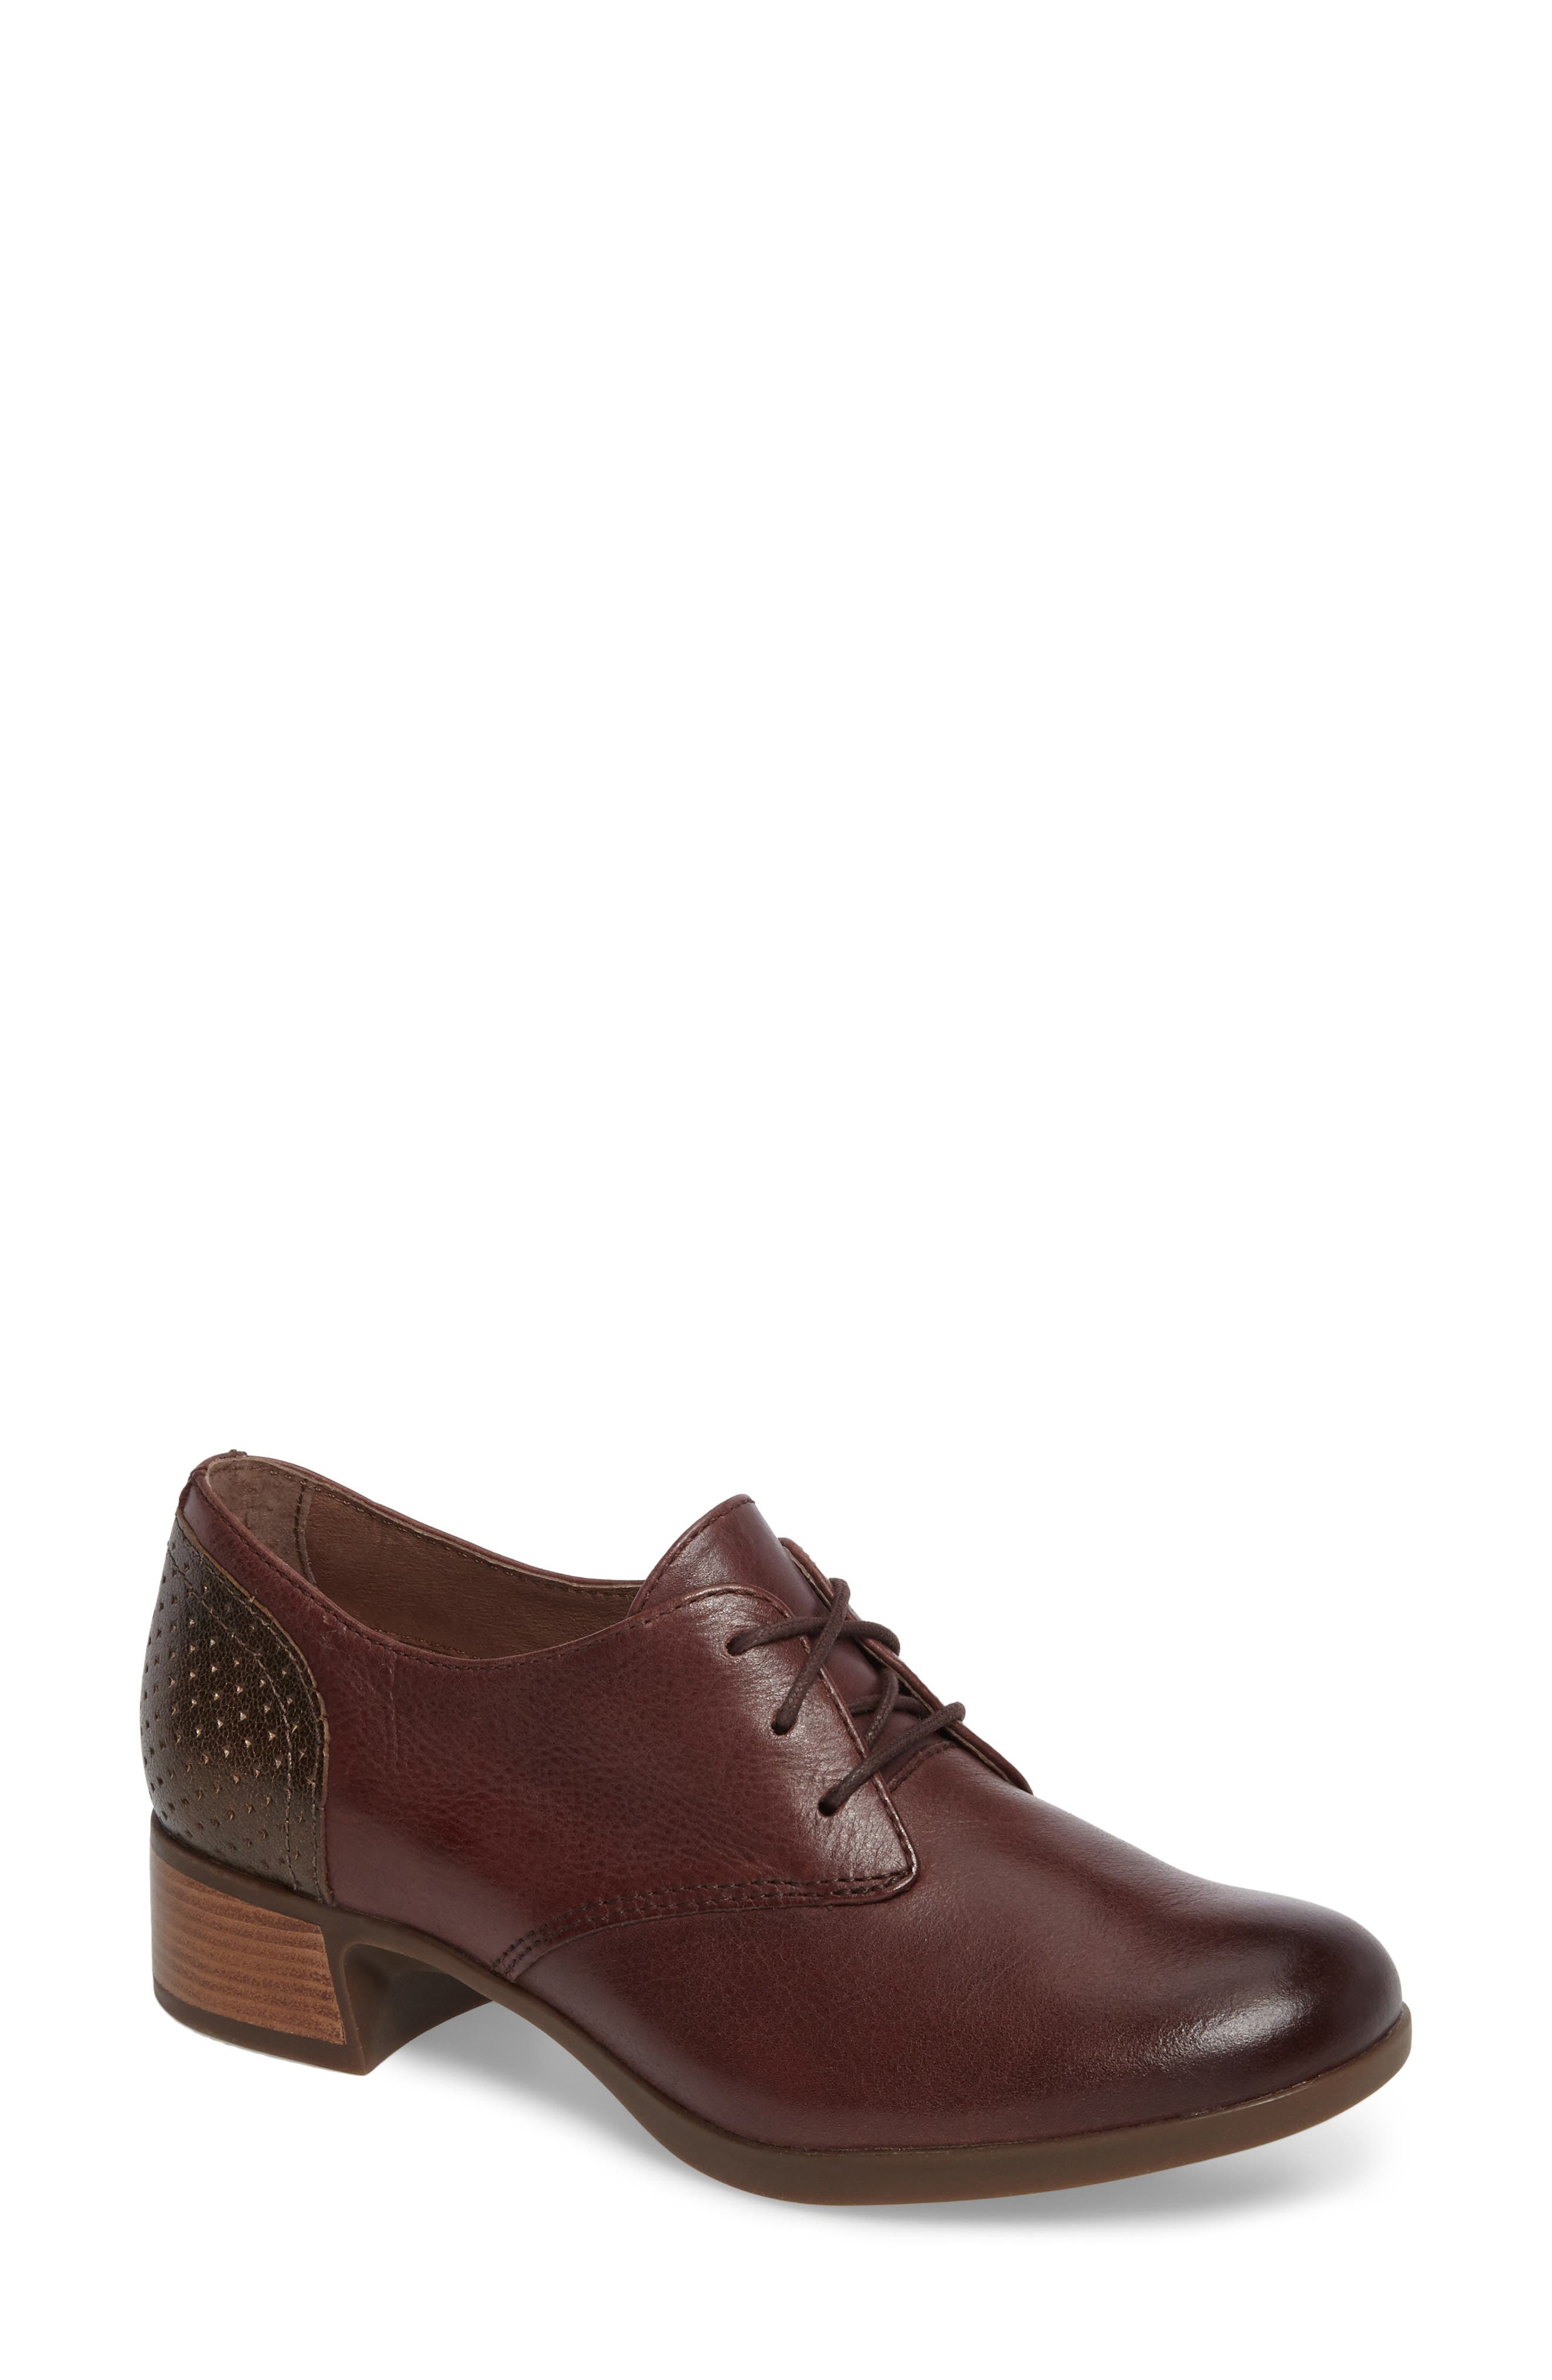 'Louise' Round Toe Derby,                             Main thumbnail 1, color,                             WINE BURNISHED LEATHER